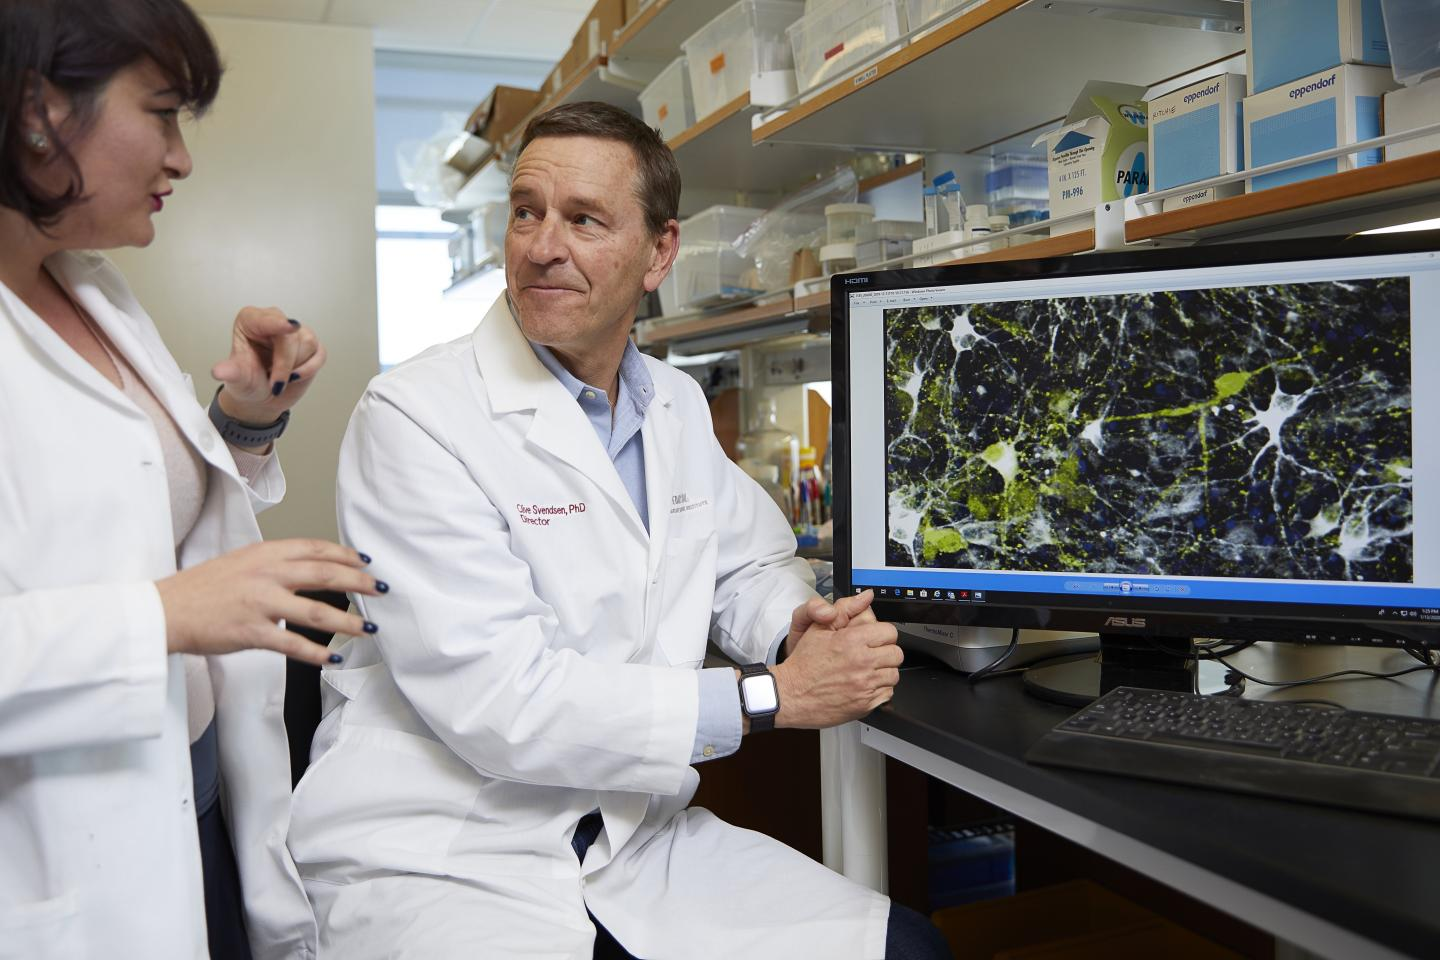 Clive Svendsen, PhD, director of the Cedars-Sinai Board of Governors Regenerative Medicine Institute, right, and Nur Yucer, PhD, a project scientist, discuss a microscope image of dopamine neurons